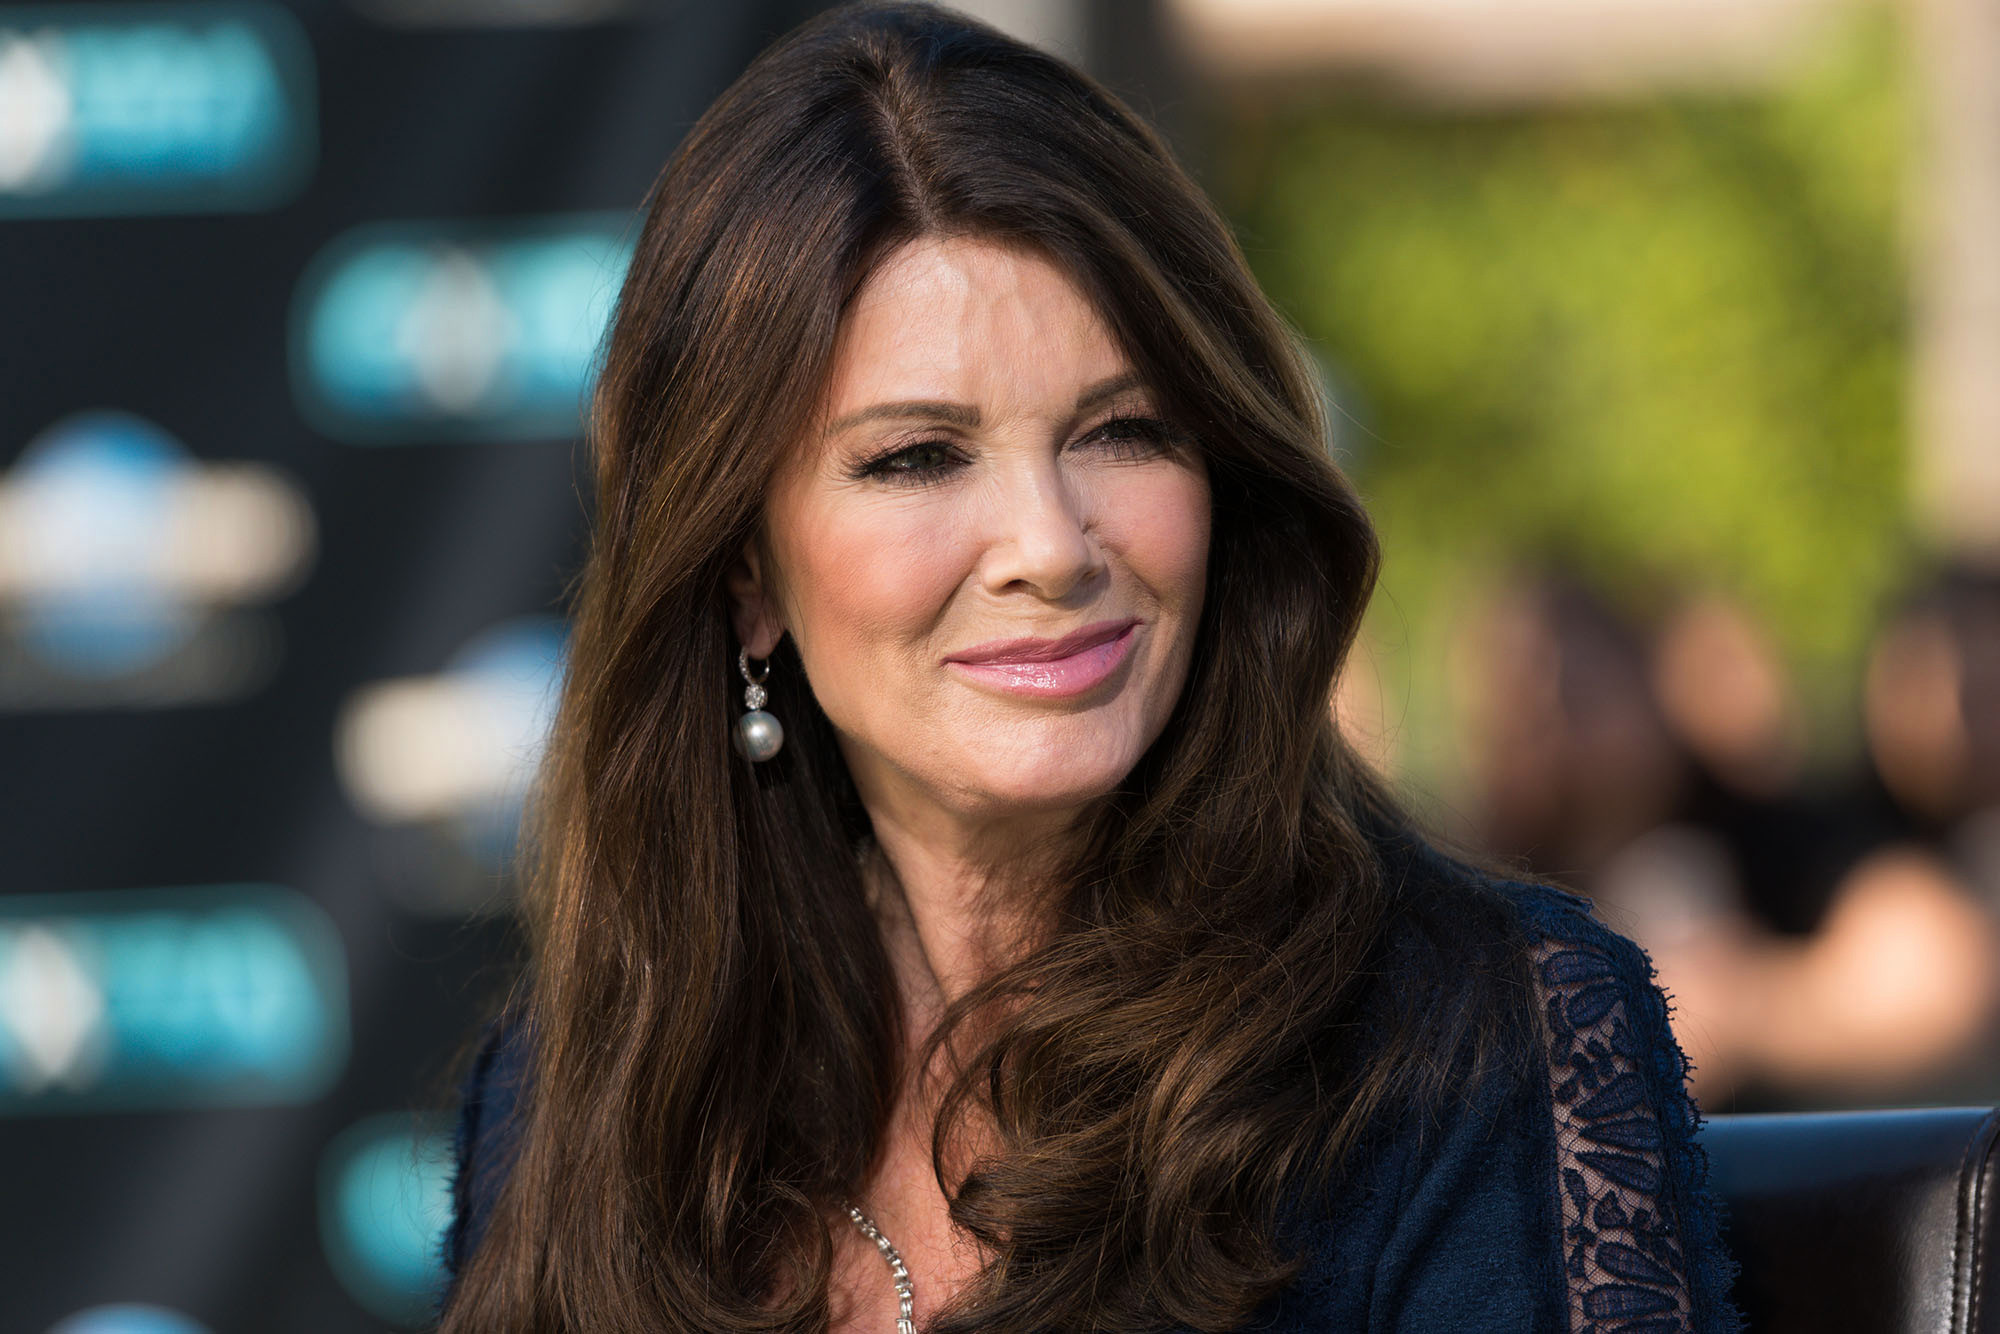 RHOBH Lisa Vanderpump Gets Personal In New Interview, What Is Her Biggest Regret?